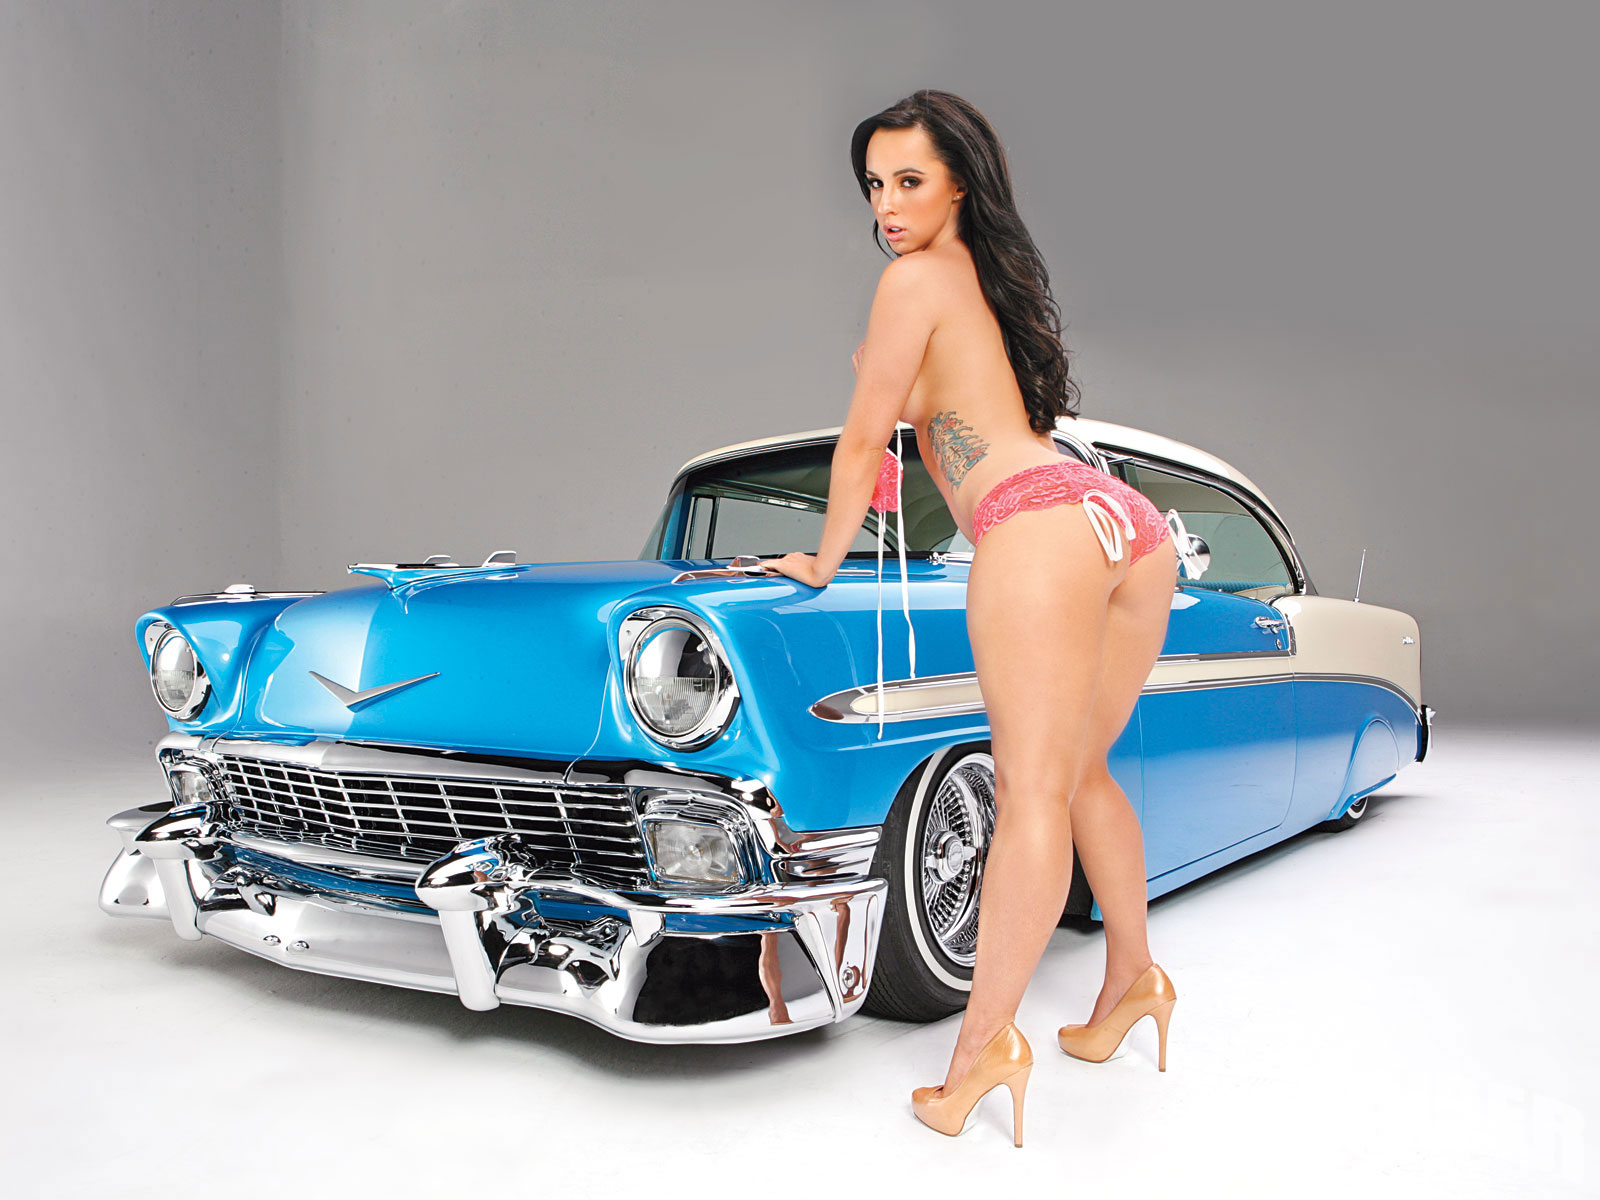 Lowrider cars with girls consider